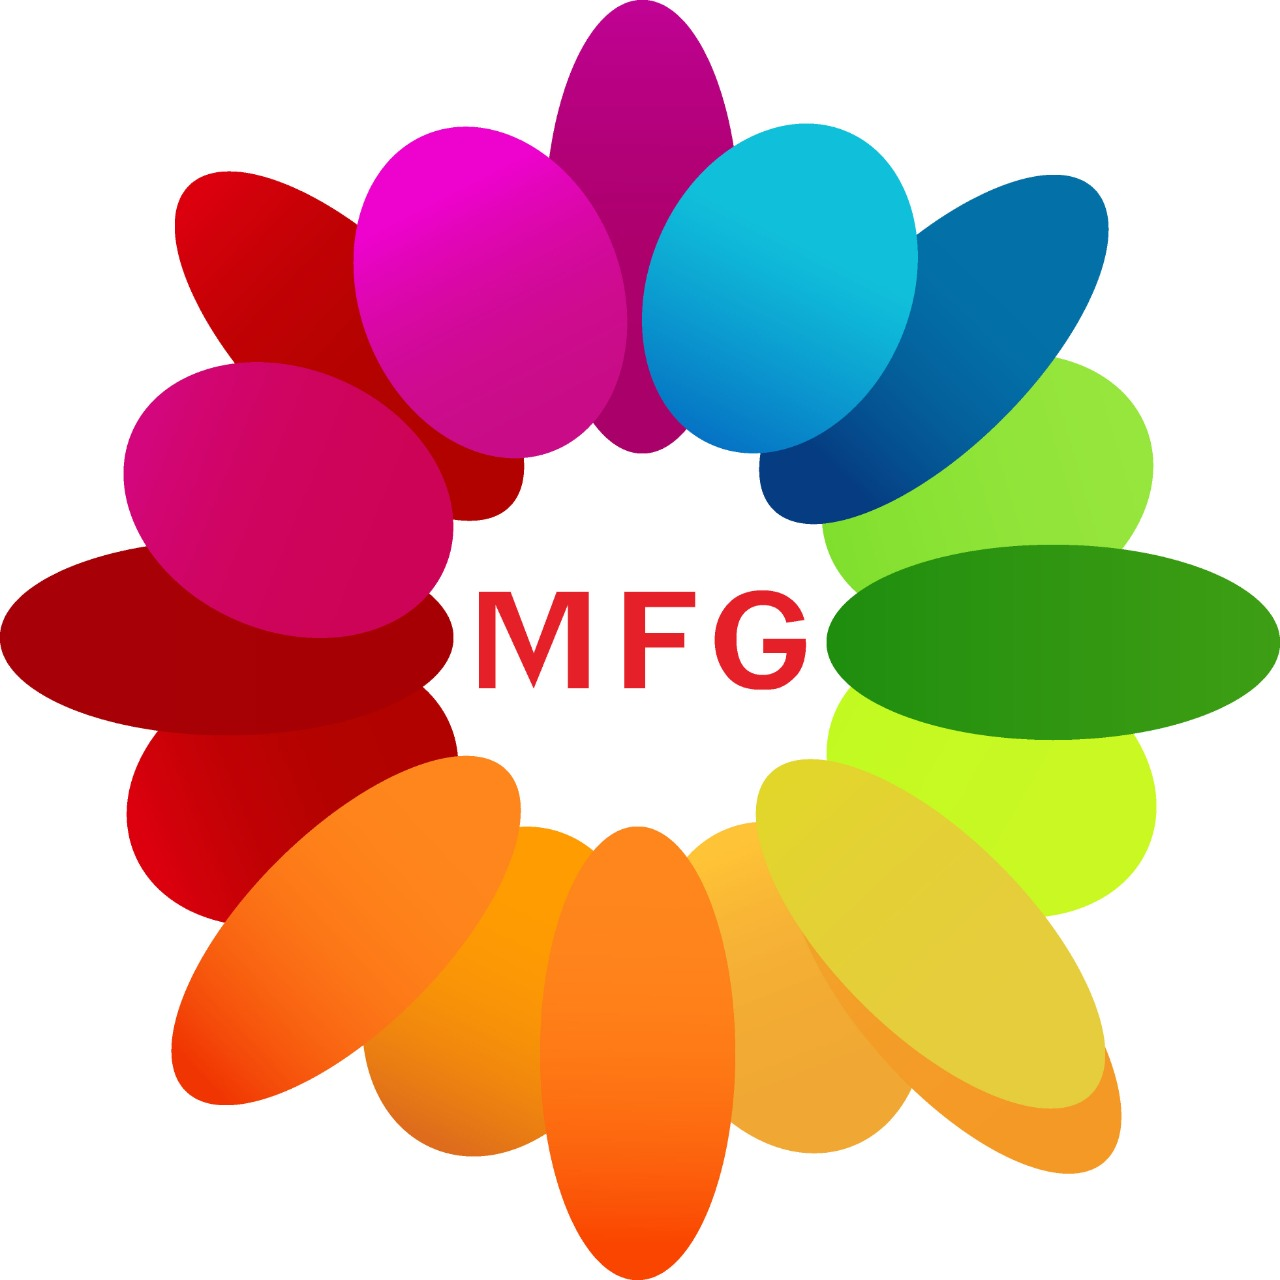 Bunch of white lilies&red carnations with 1 kg Butterscotch cake with 3 heart shape blown balloons